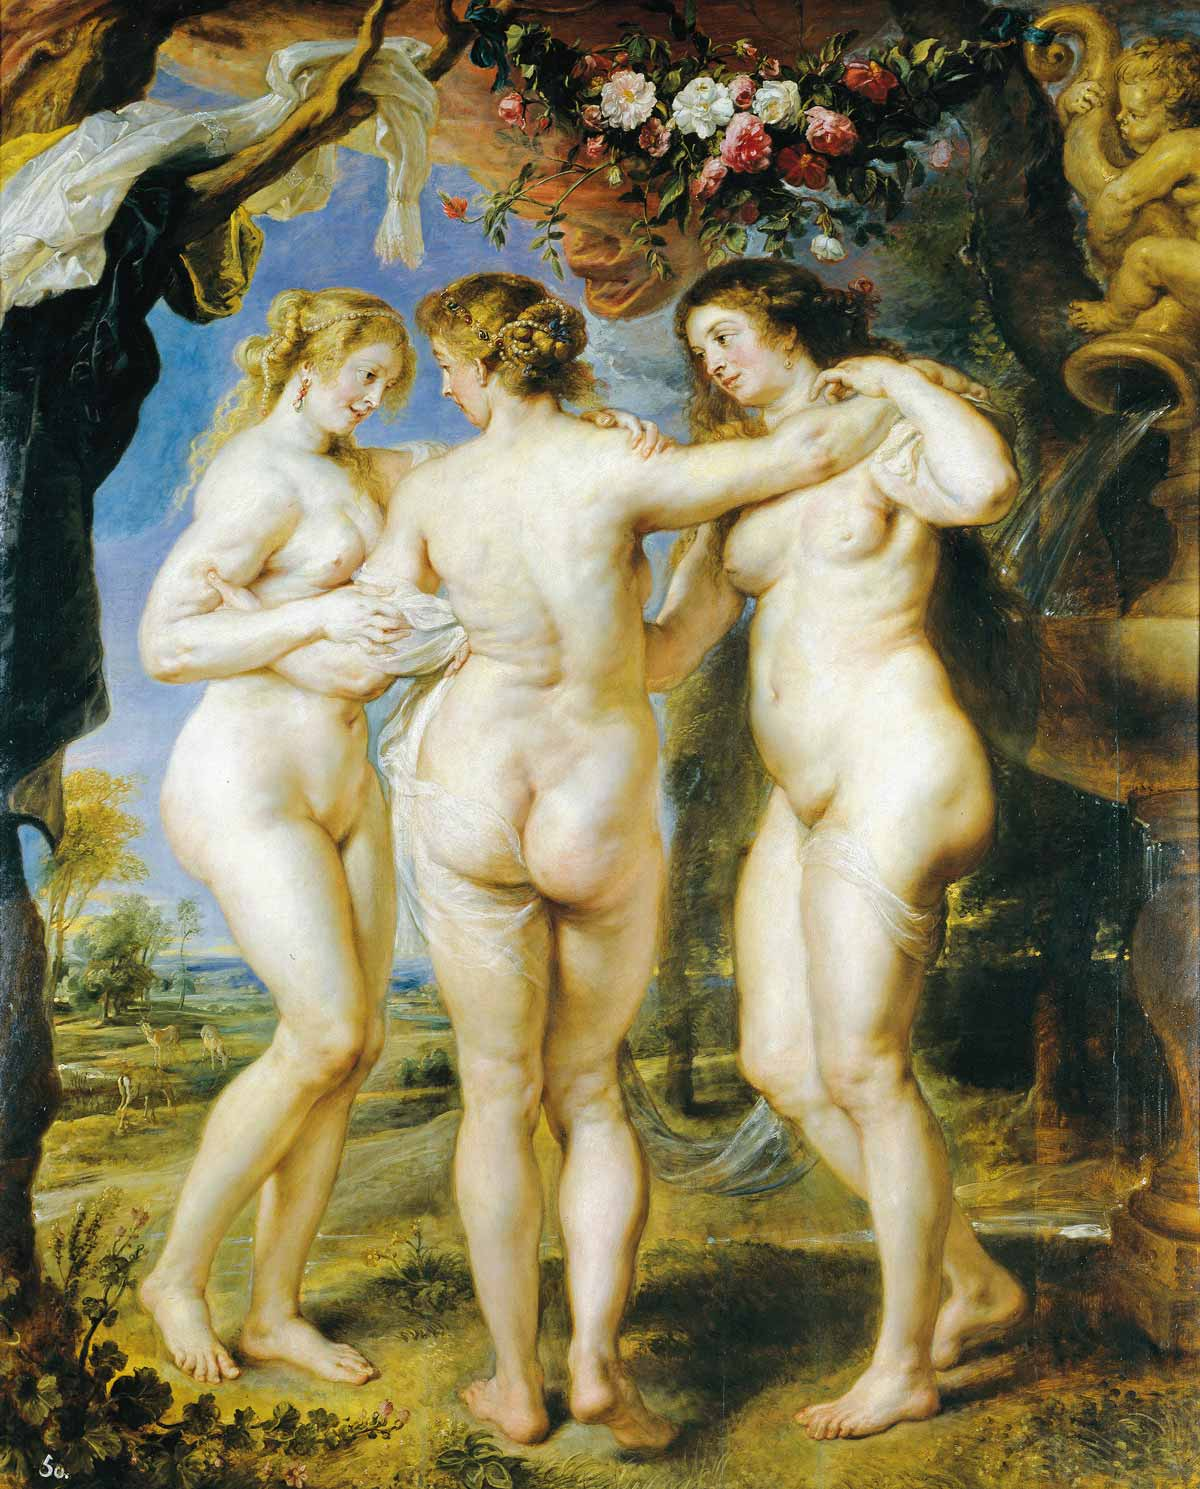 Painting by Paul Rubens: The Three Graces (1635)